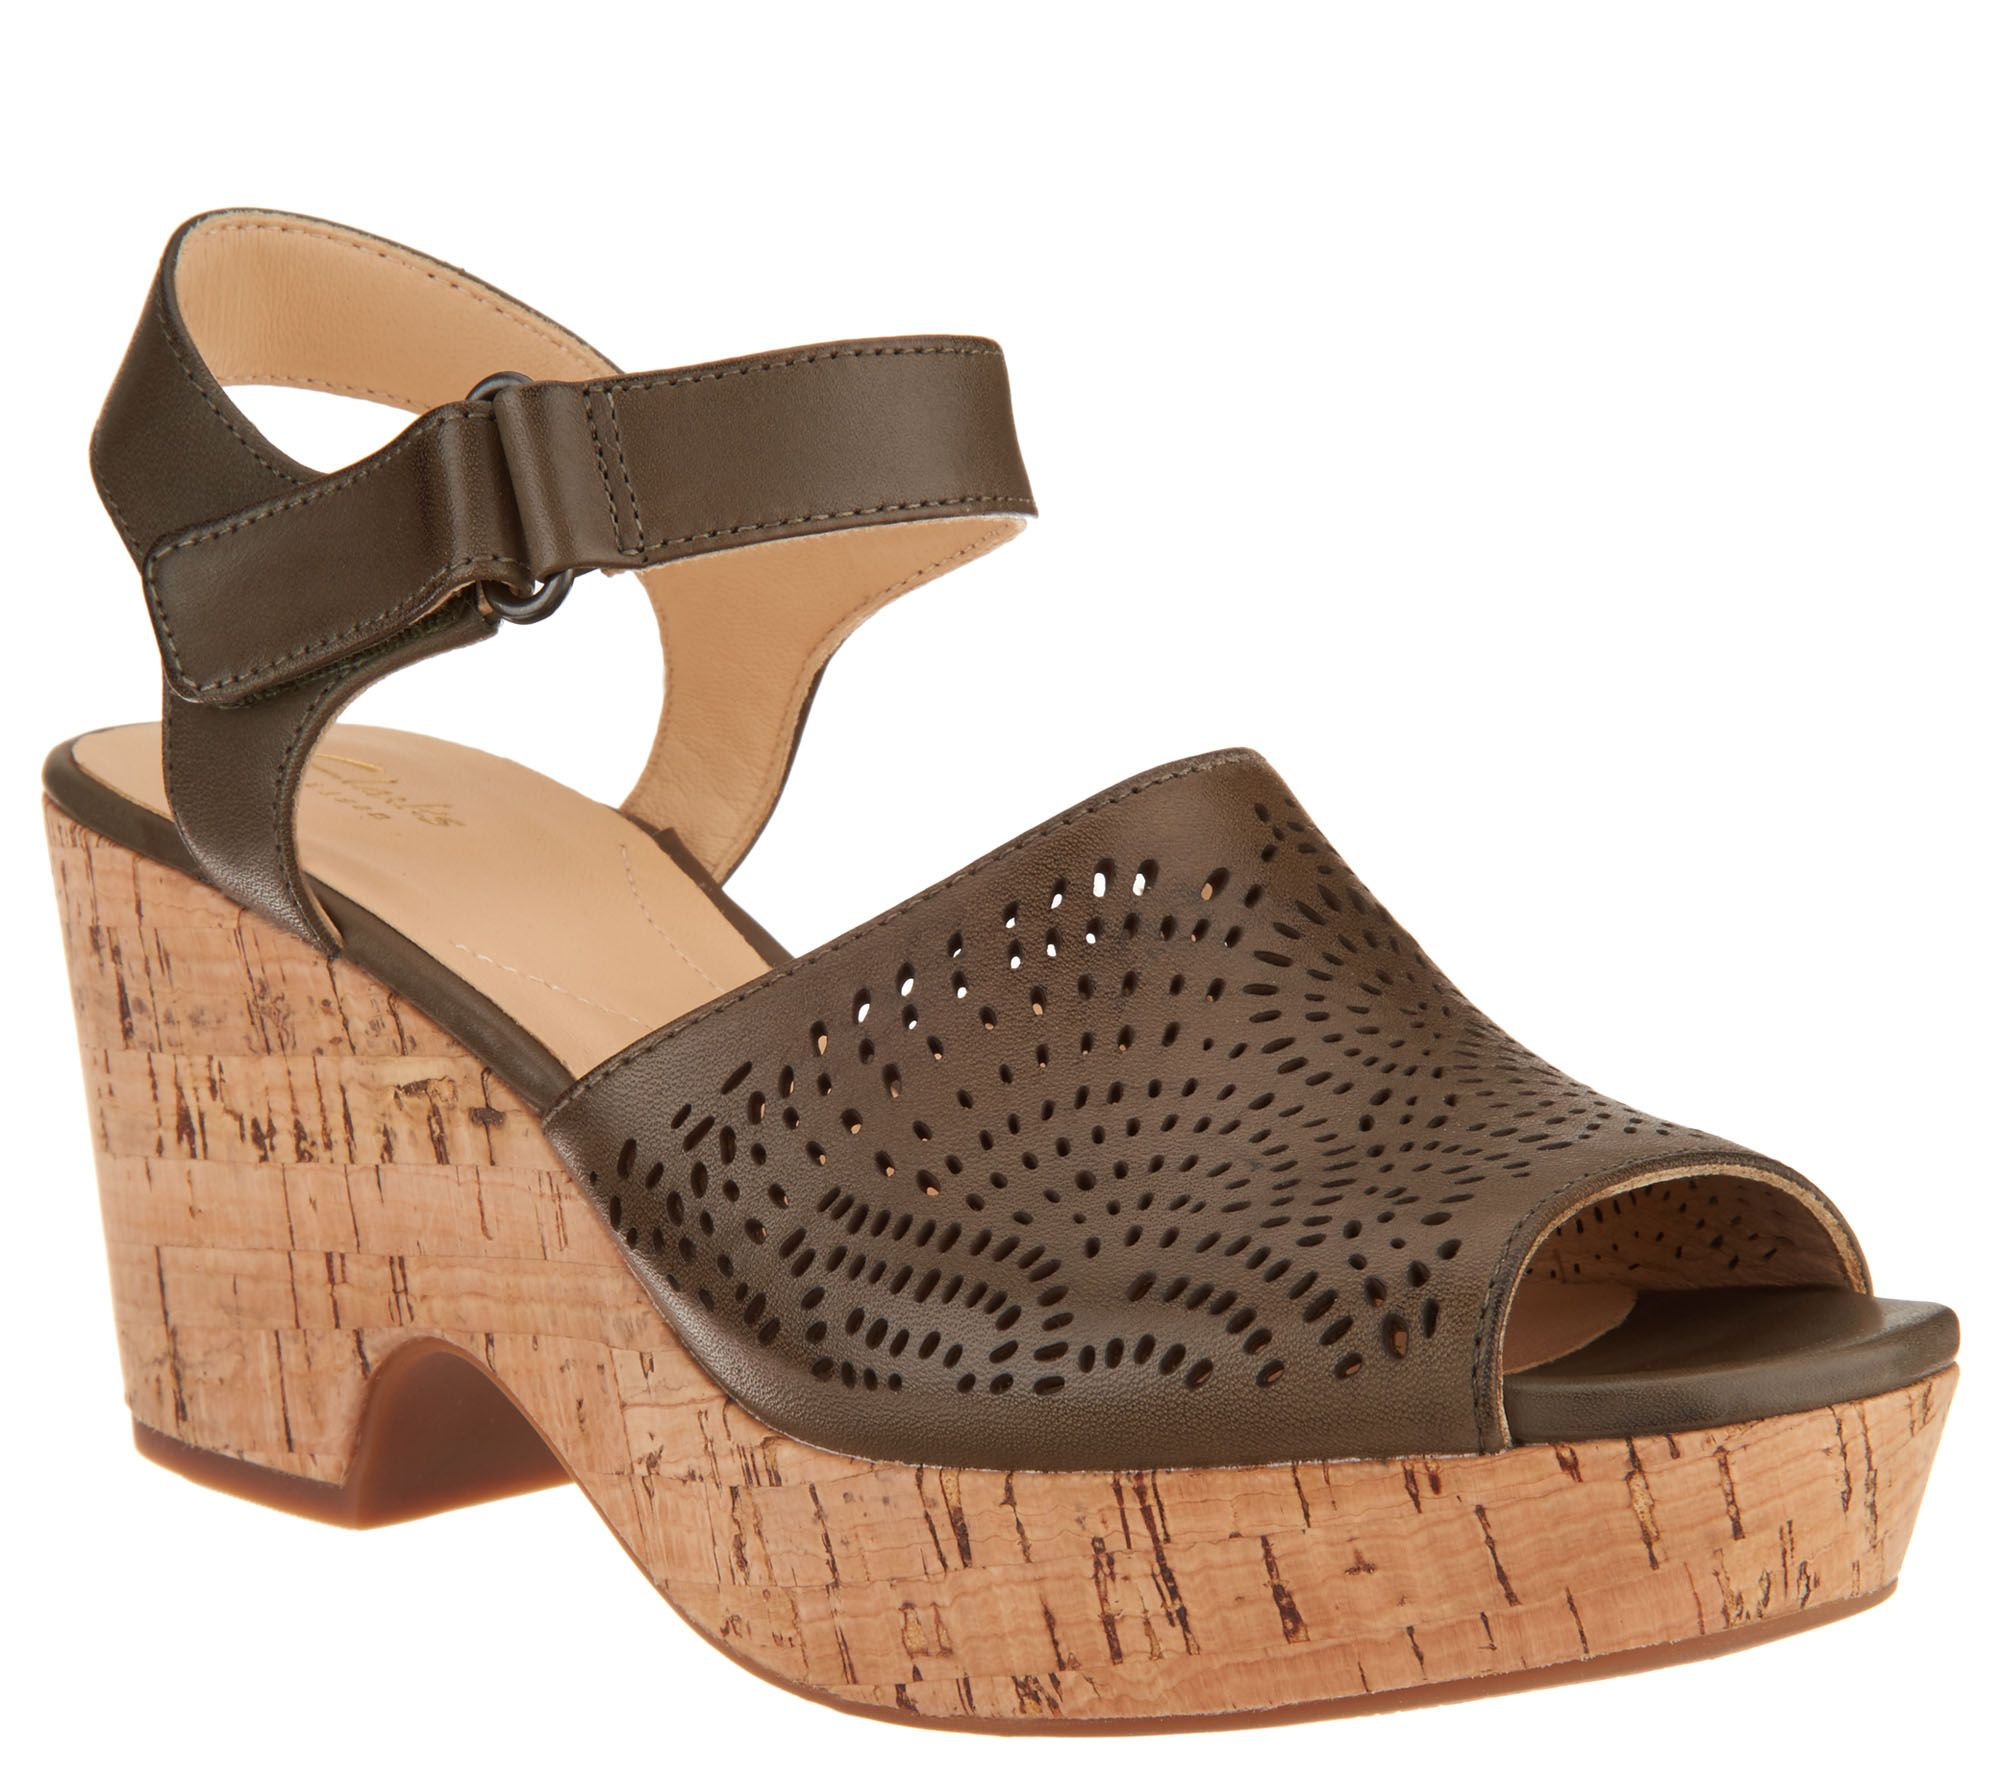 5634b64a9e12 Clarks Artisan Perforated Leather Wedge Sandals - Maritsa Nila - Page 1 —  QVC.com